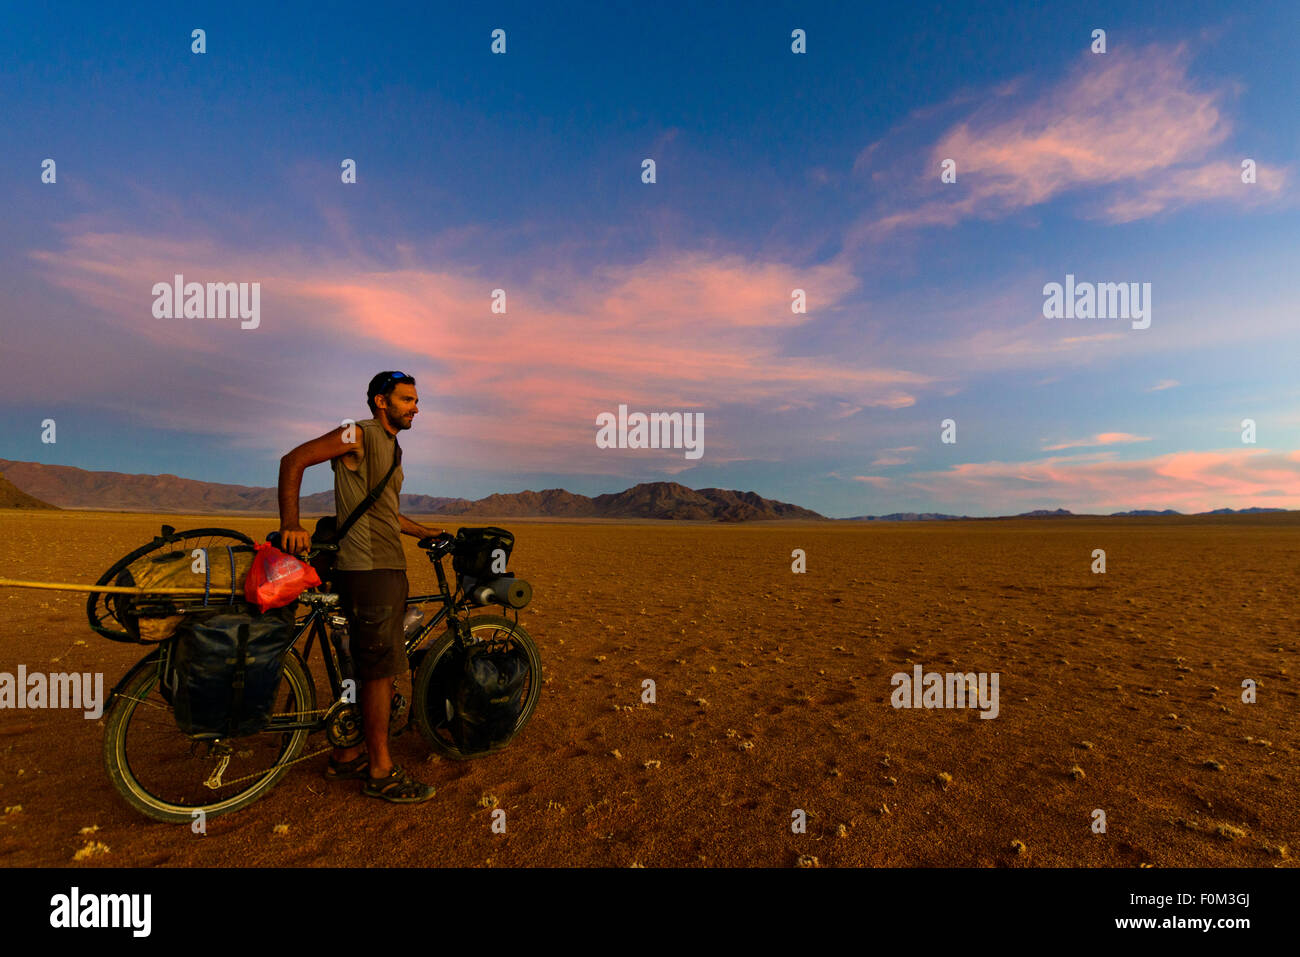 Cycling in the Namib desert, Namibia, Africa Stock Photo